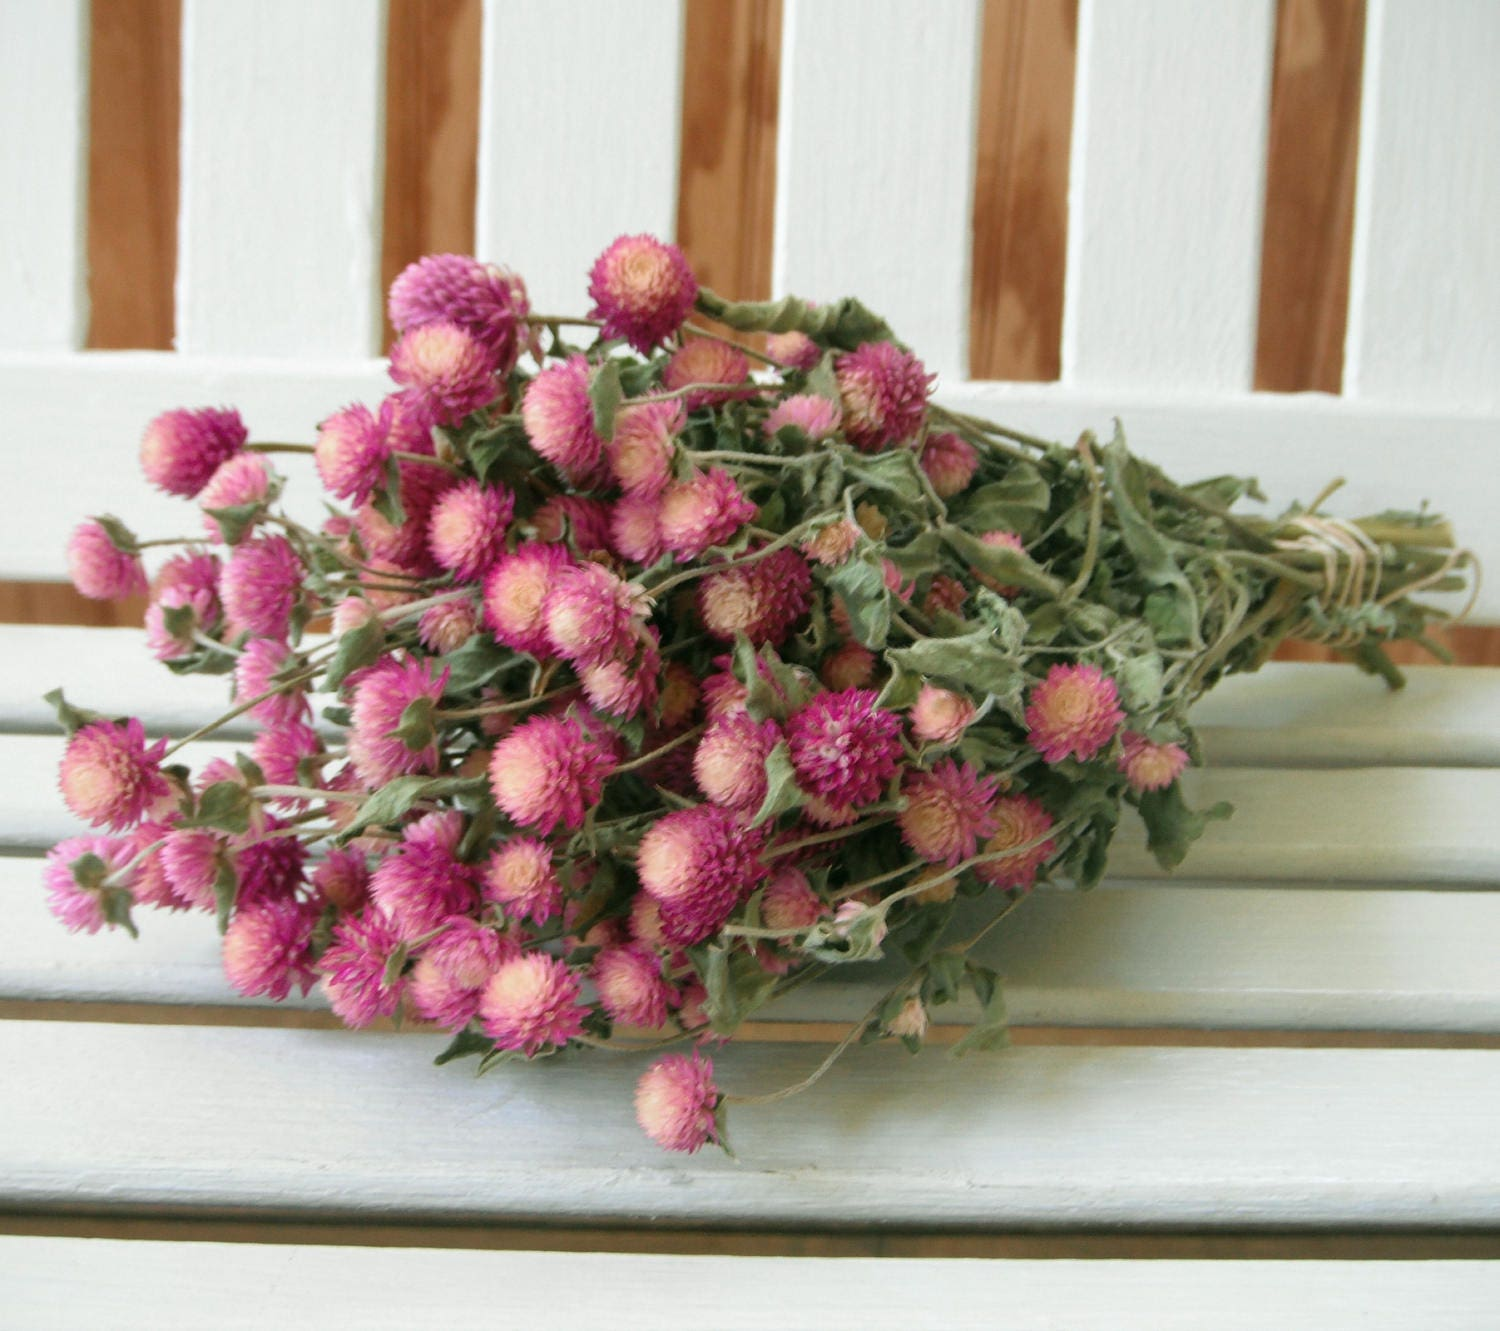 How to scrapbook dried flowers - Dried Flowers Bi Colored Lovely Rose Pink Cream Color Globe Amaranth Flowers Gomphrena Flower Bunch Prim Wedding Shabby Cottage Floral